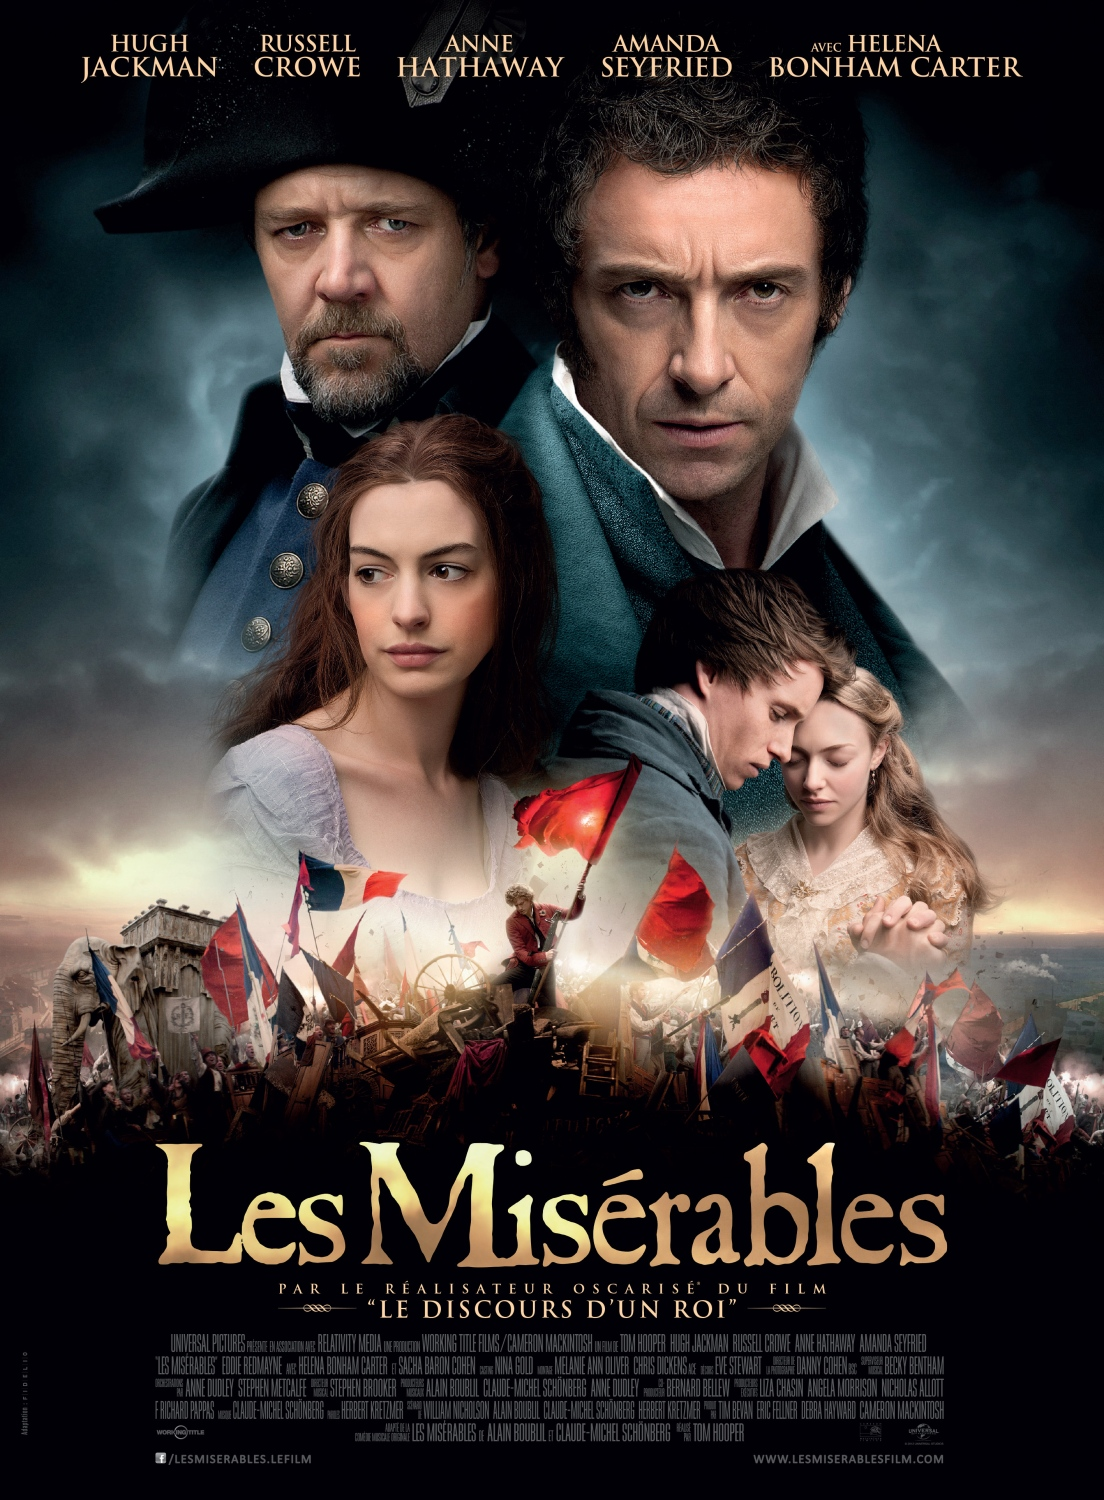 LES-MISERABLES-Affiche-France.jpg